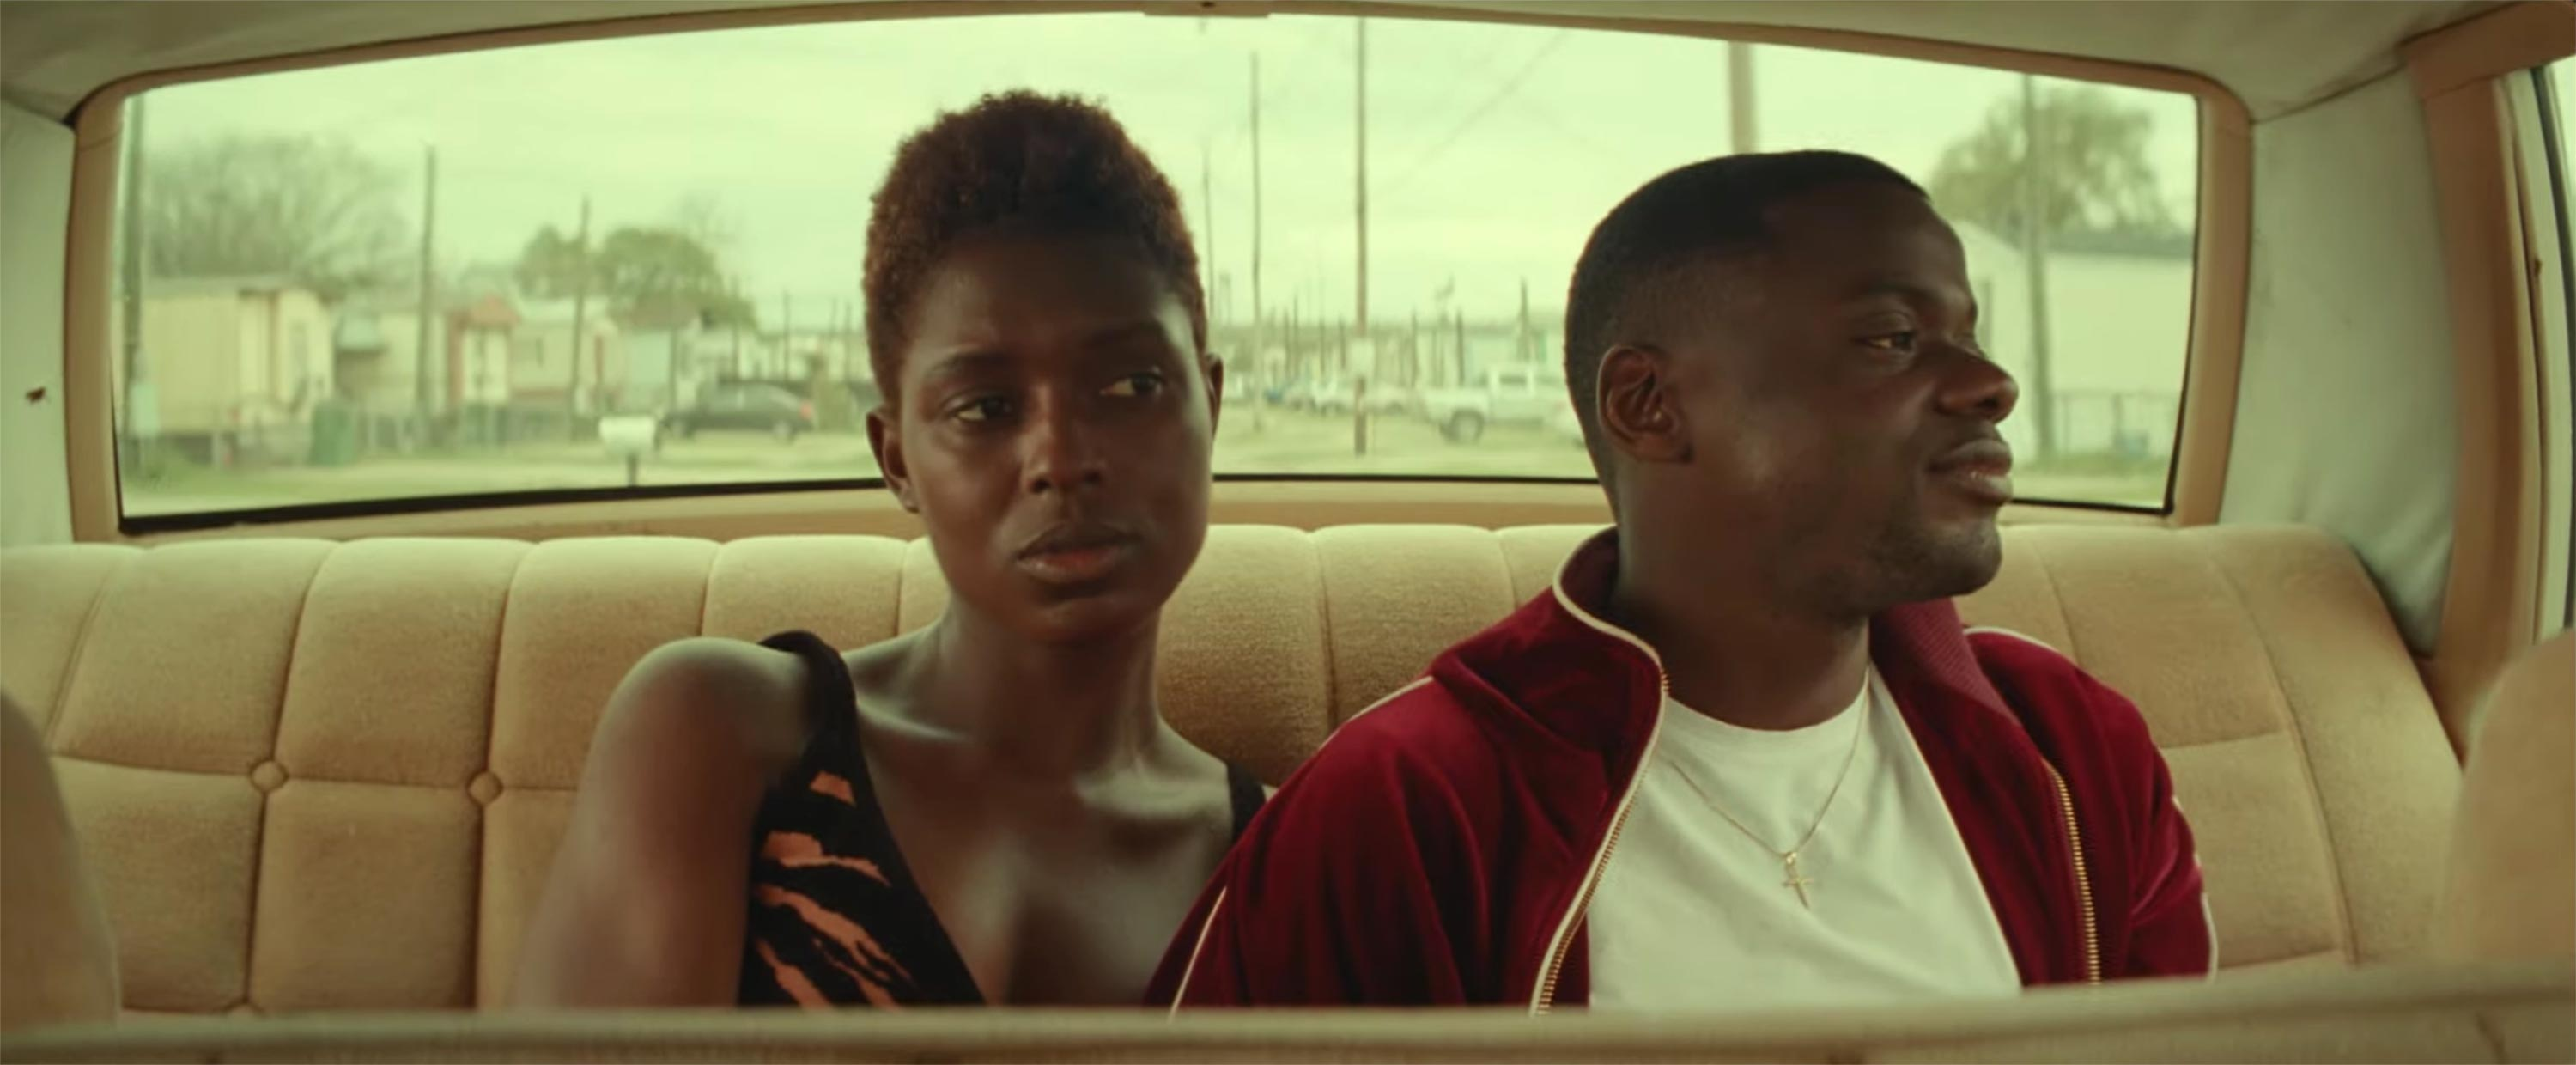 Formation' video director makes film debut with 'Queen & Slim' | New York  Amsterdam News: The new Black view